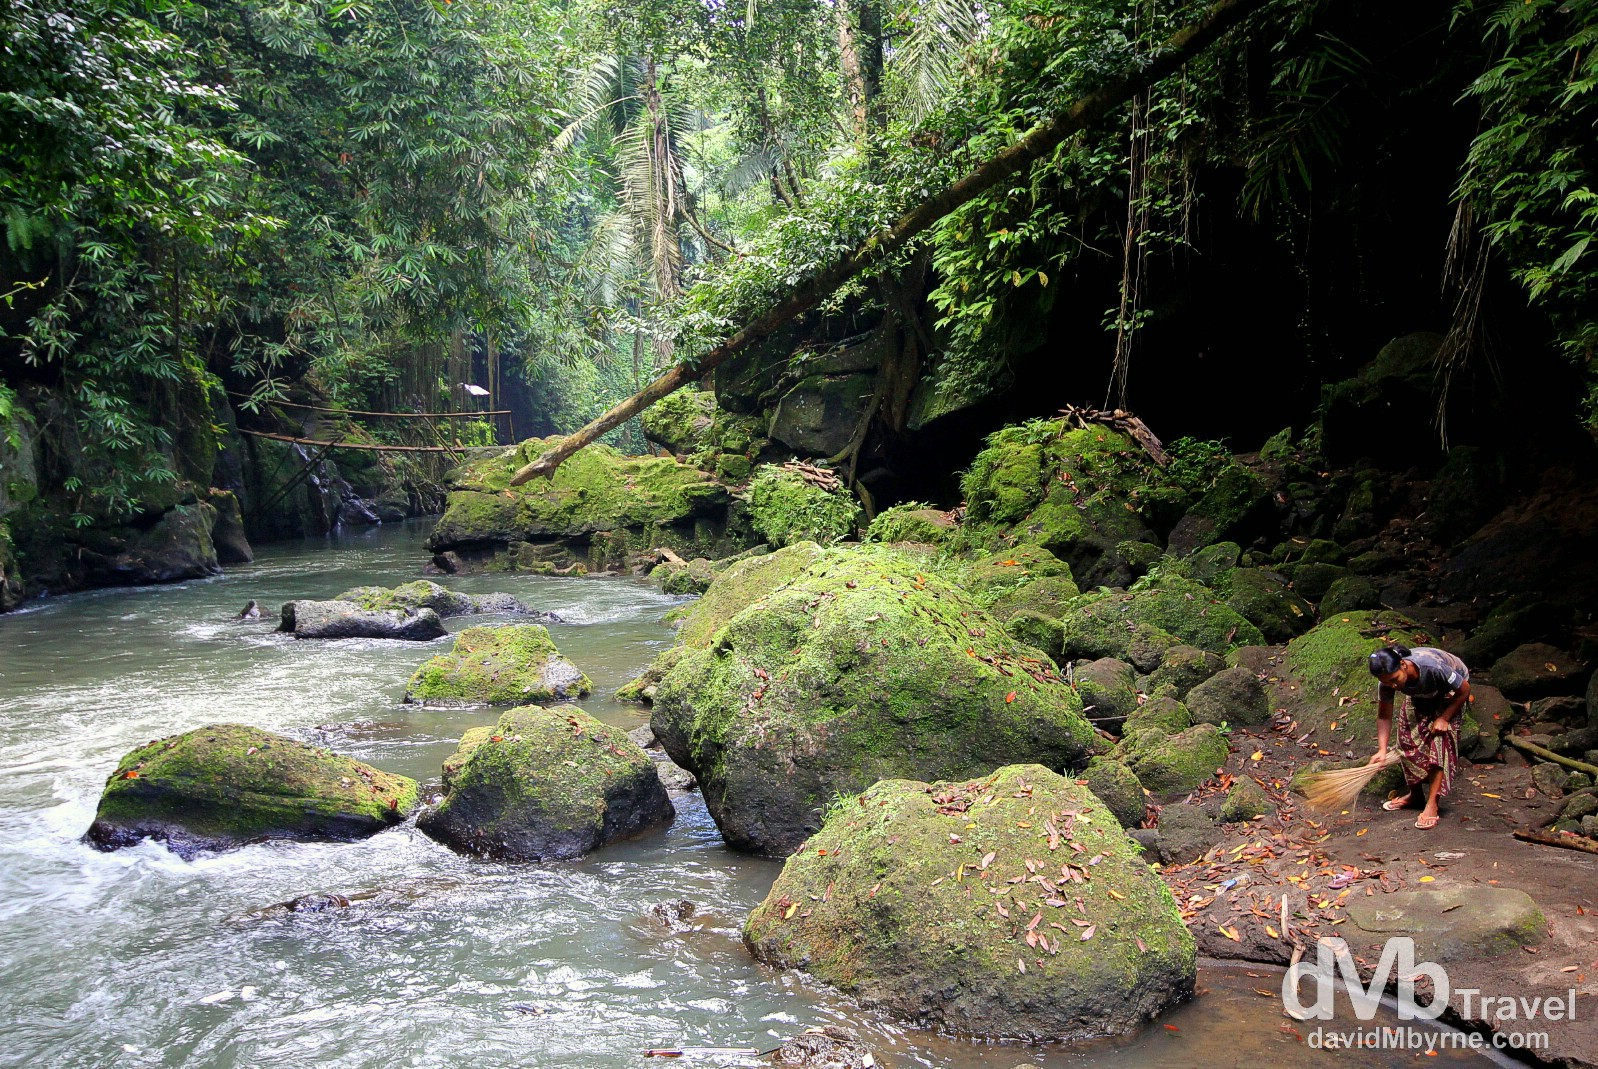 Jungle scenery near Goa Gajah (Elephant Cave) on the outskirts of Ubud, Bali, Indonesia. June 19th 2012.